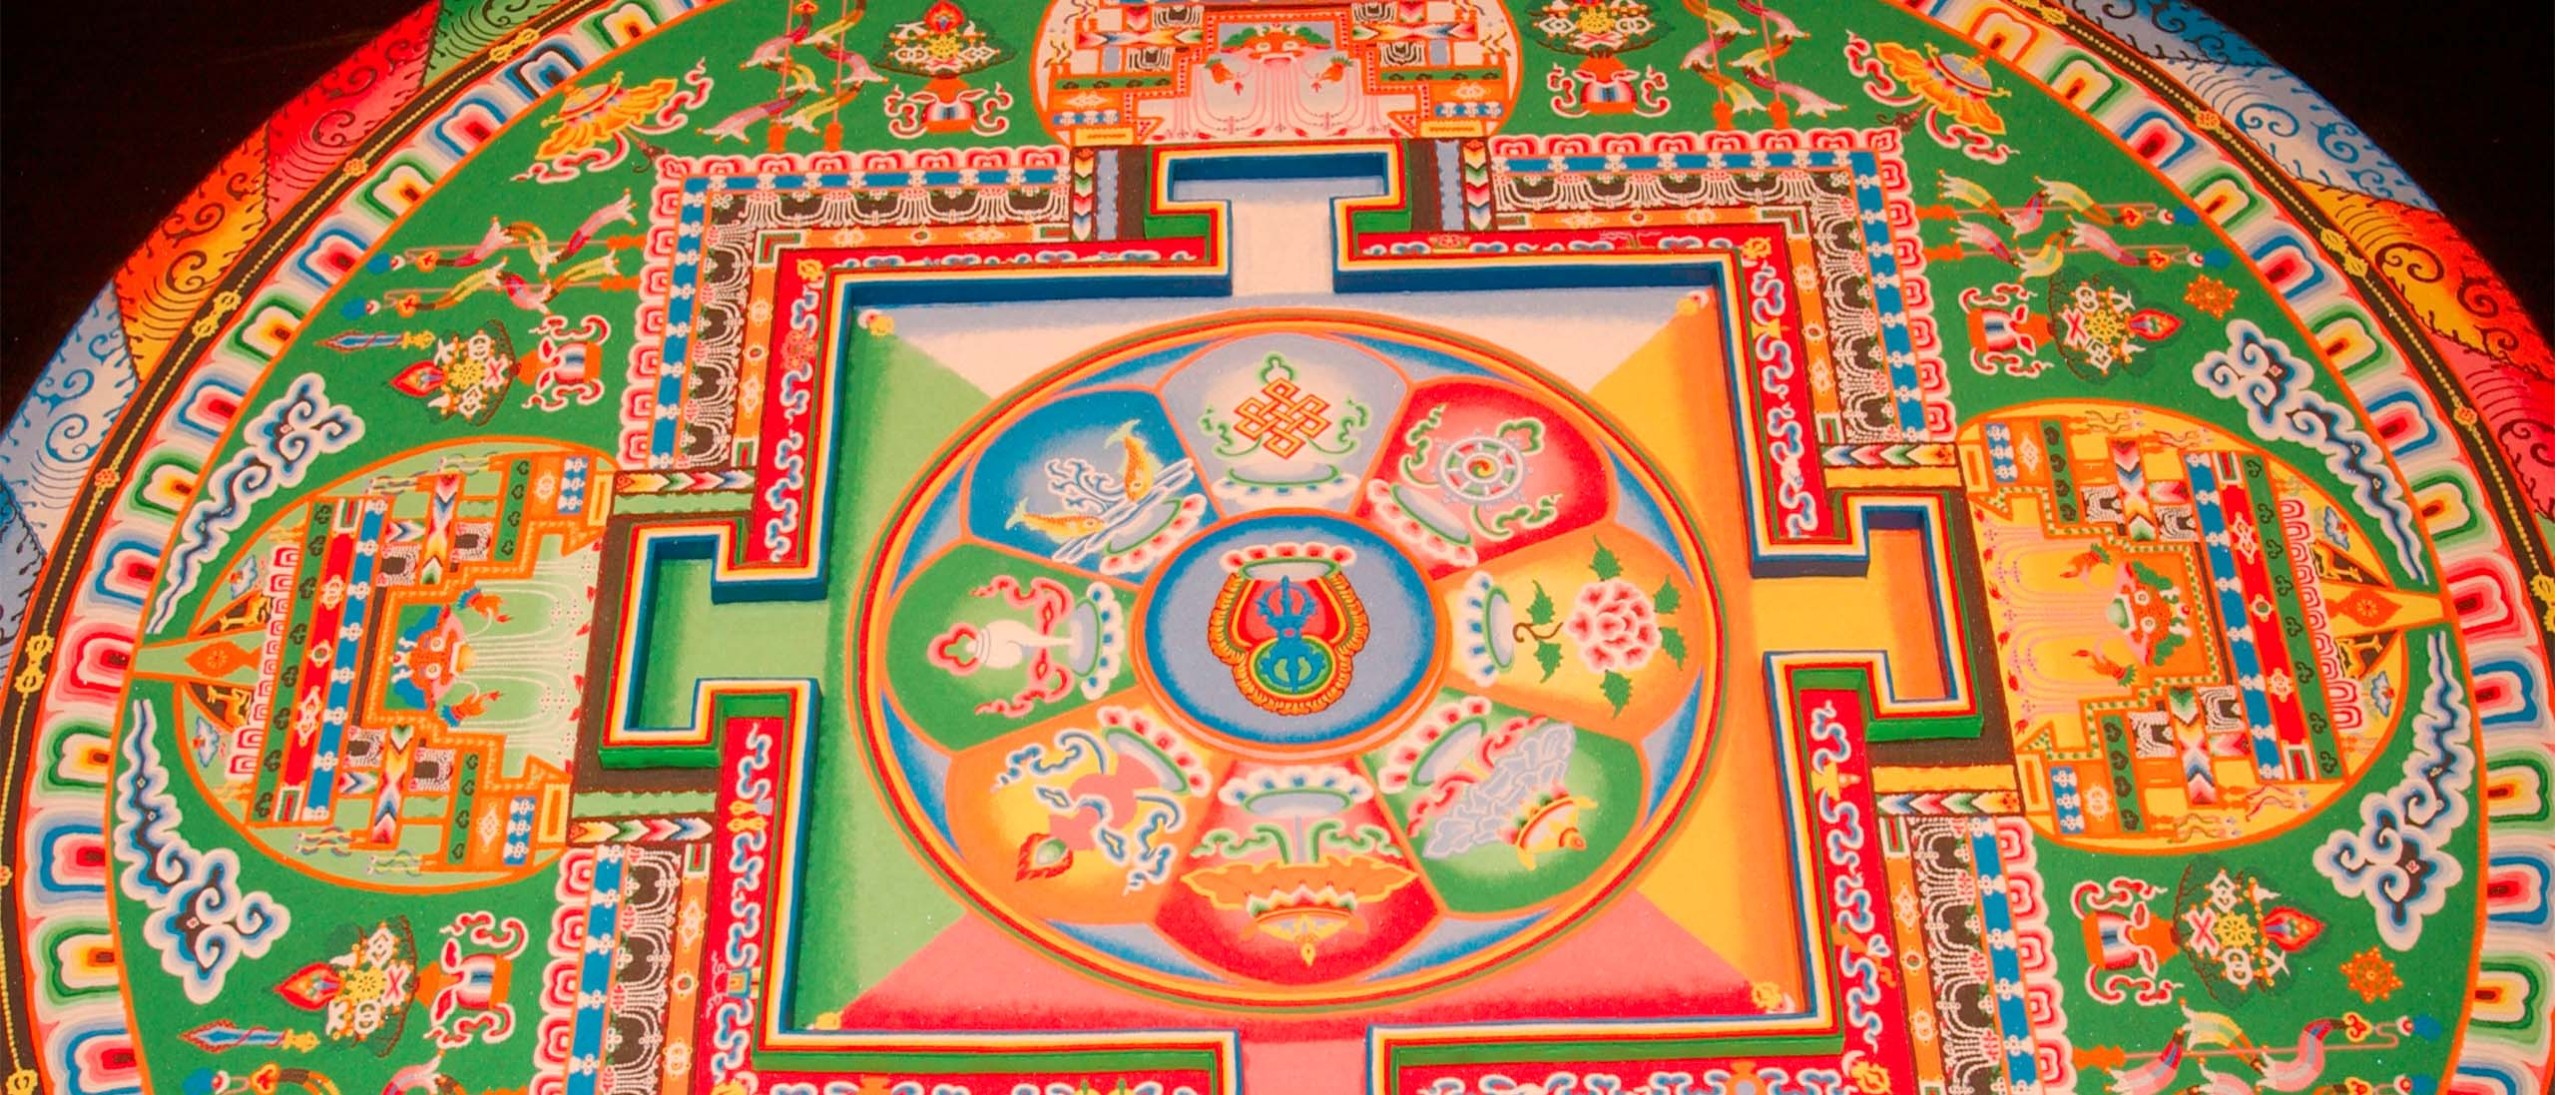 The completed mandala - intricate and colorful - in vivid red, yellow, green, blue, and white.